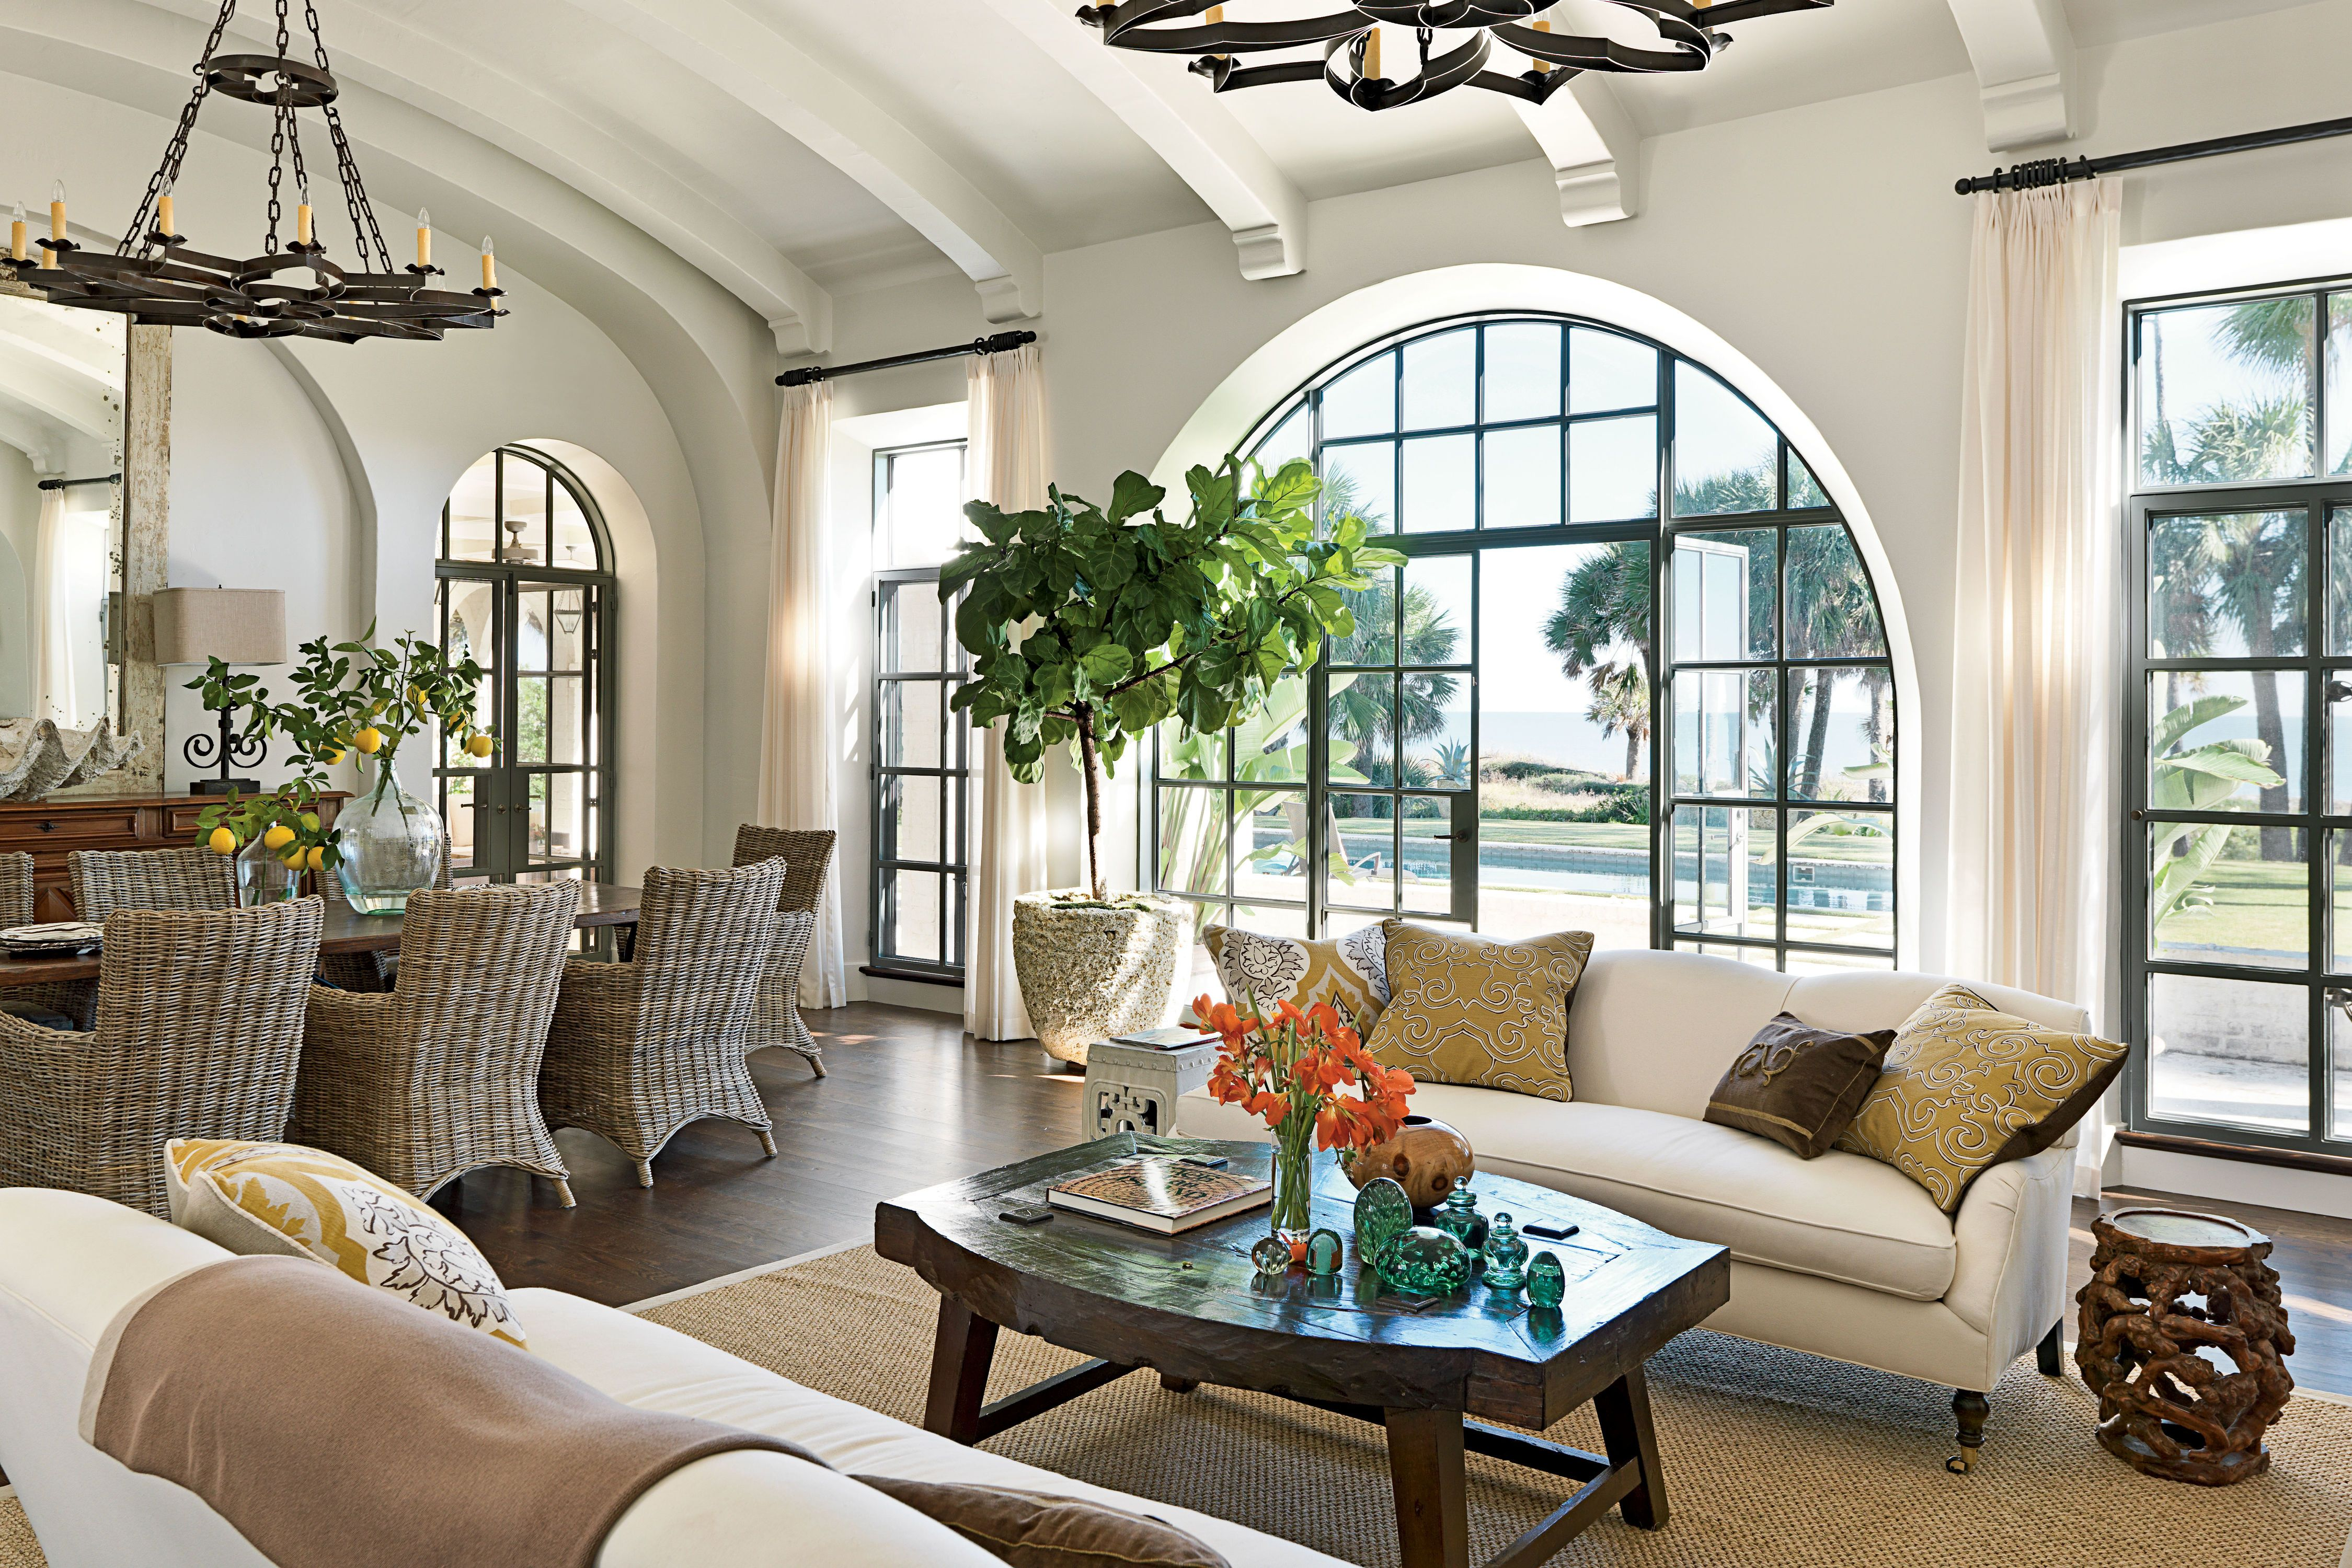 New Home With Old World Style Mediterranean Living Rooms Spanish Decor Mediterranean Decor